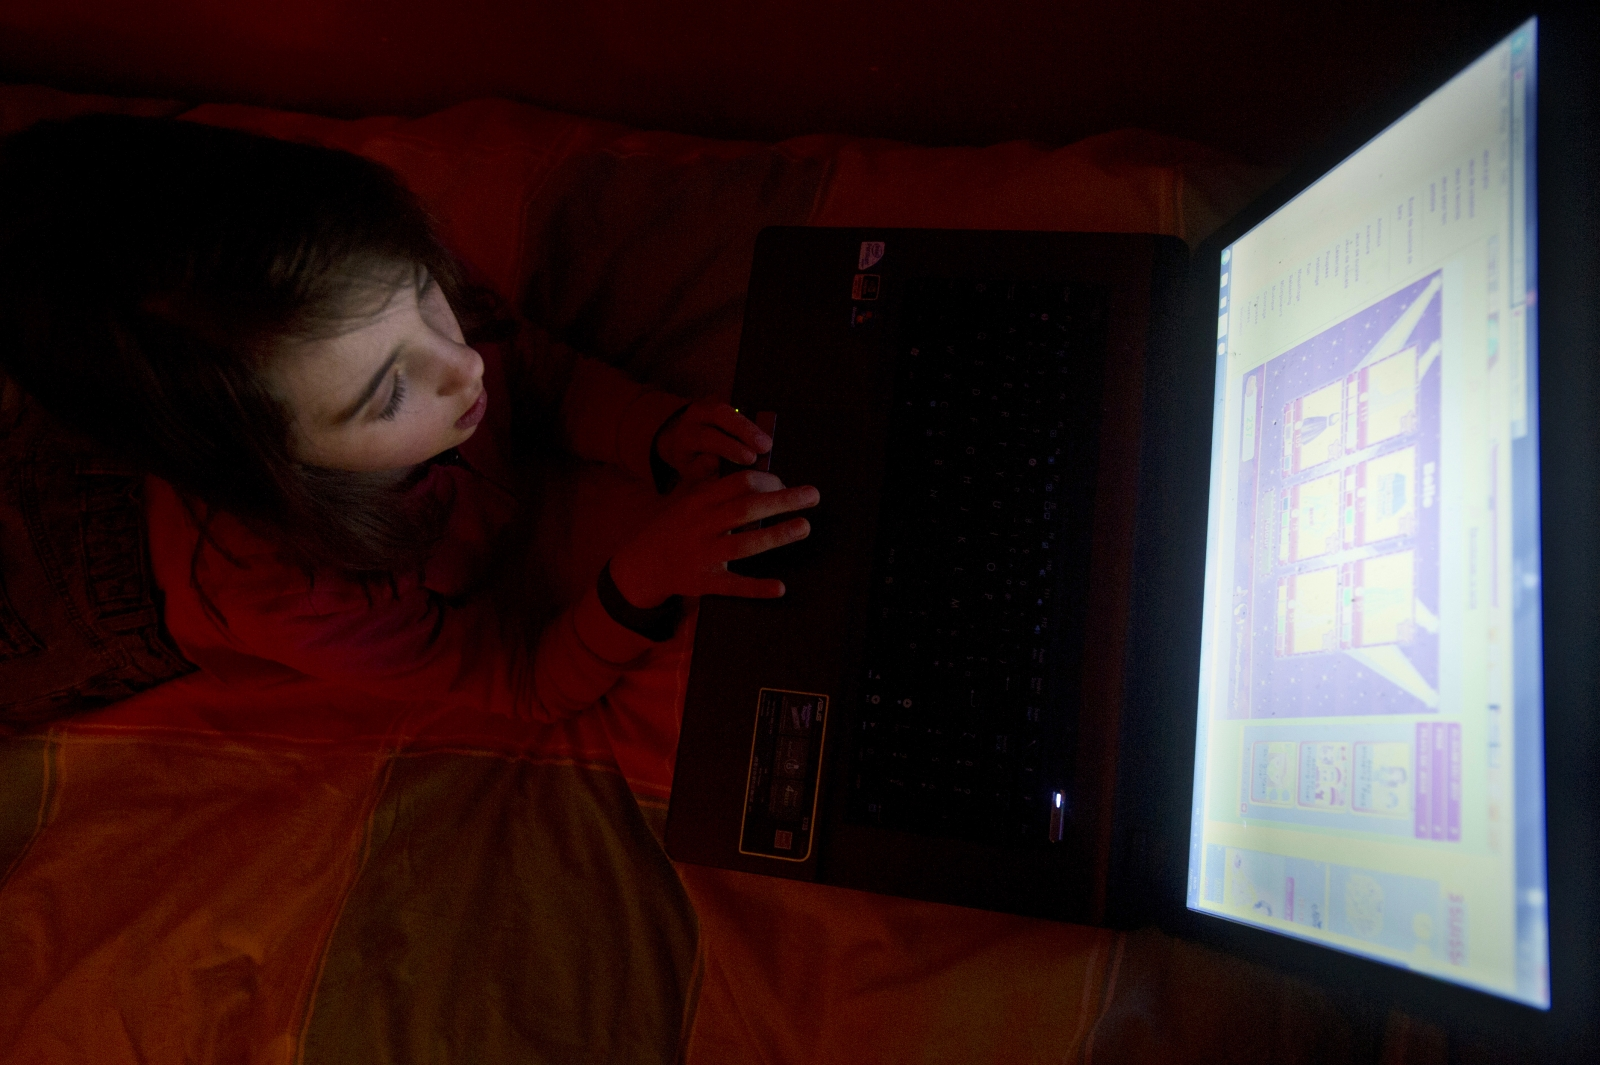 Many children fear web porn addiction